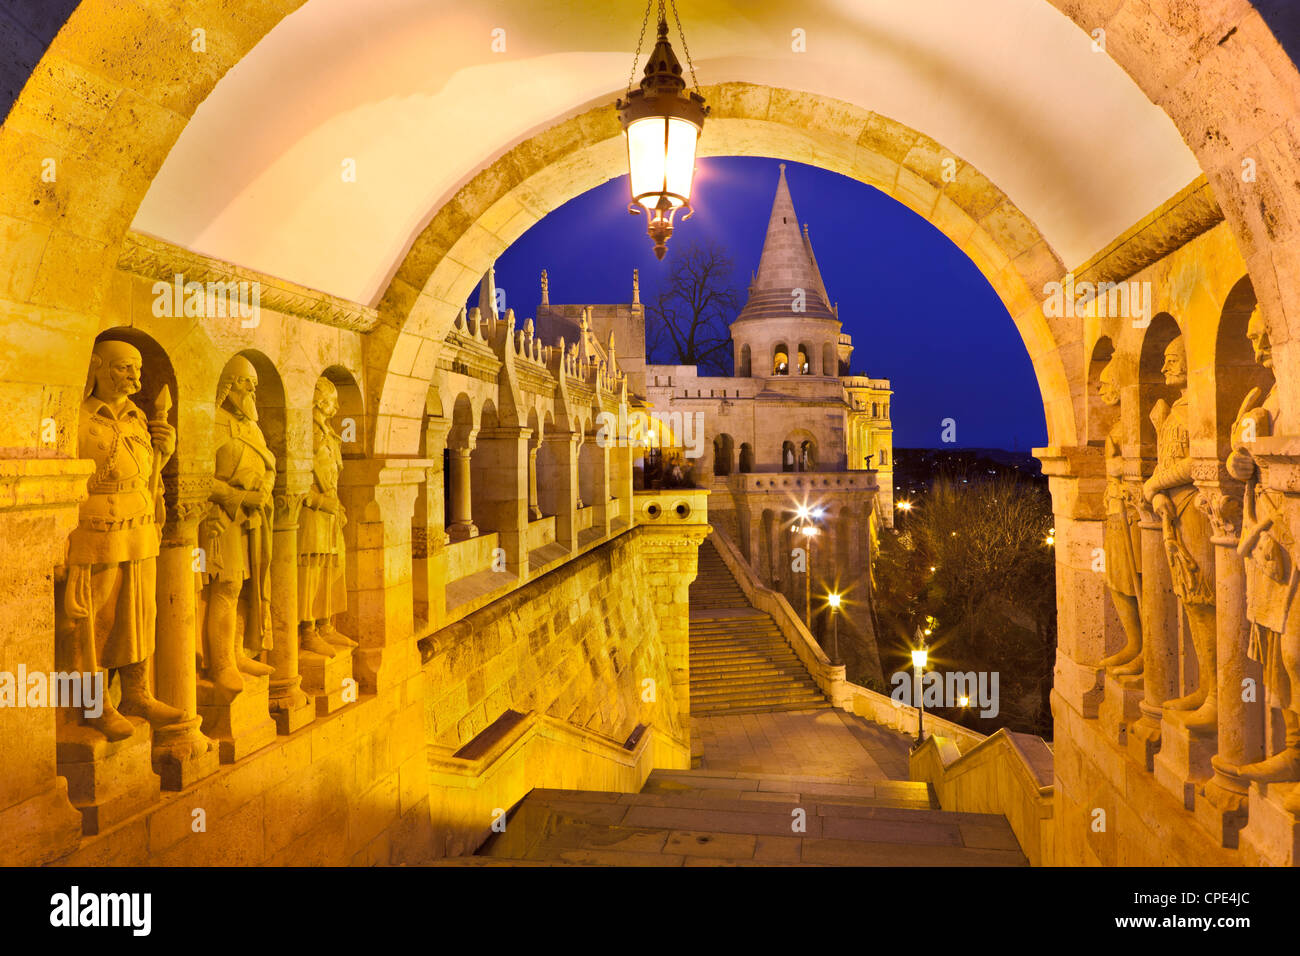 Fishermen's Bastion (Halaszbastya) at dusk, Buda, Budapest, Hungary, Europe - Stock Image